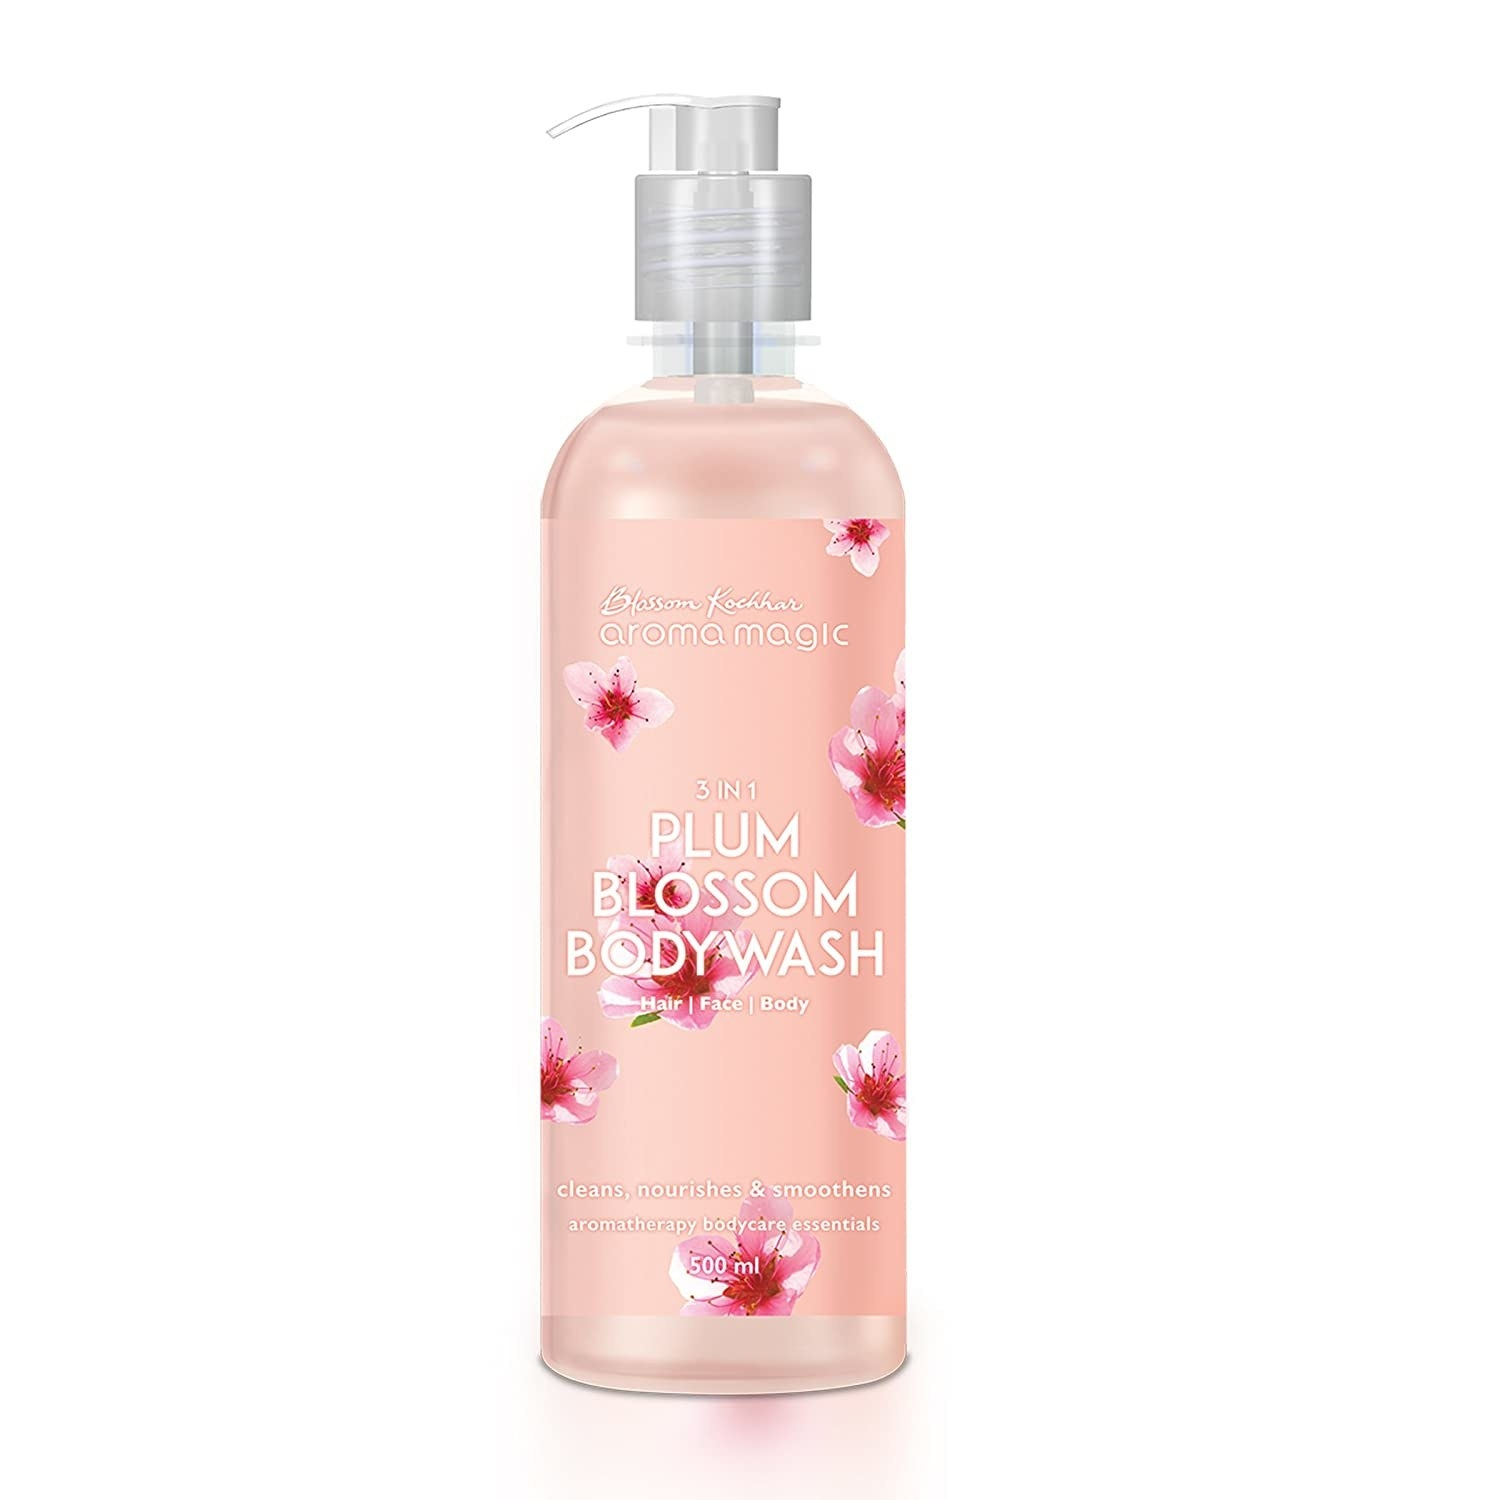 A plum body wash with flowery packaging